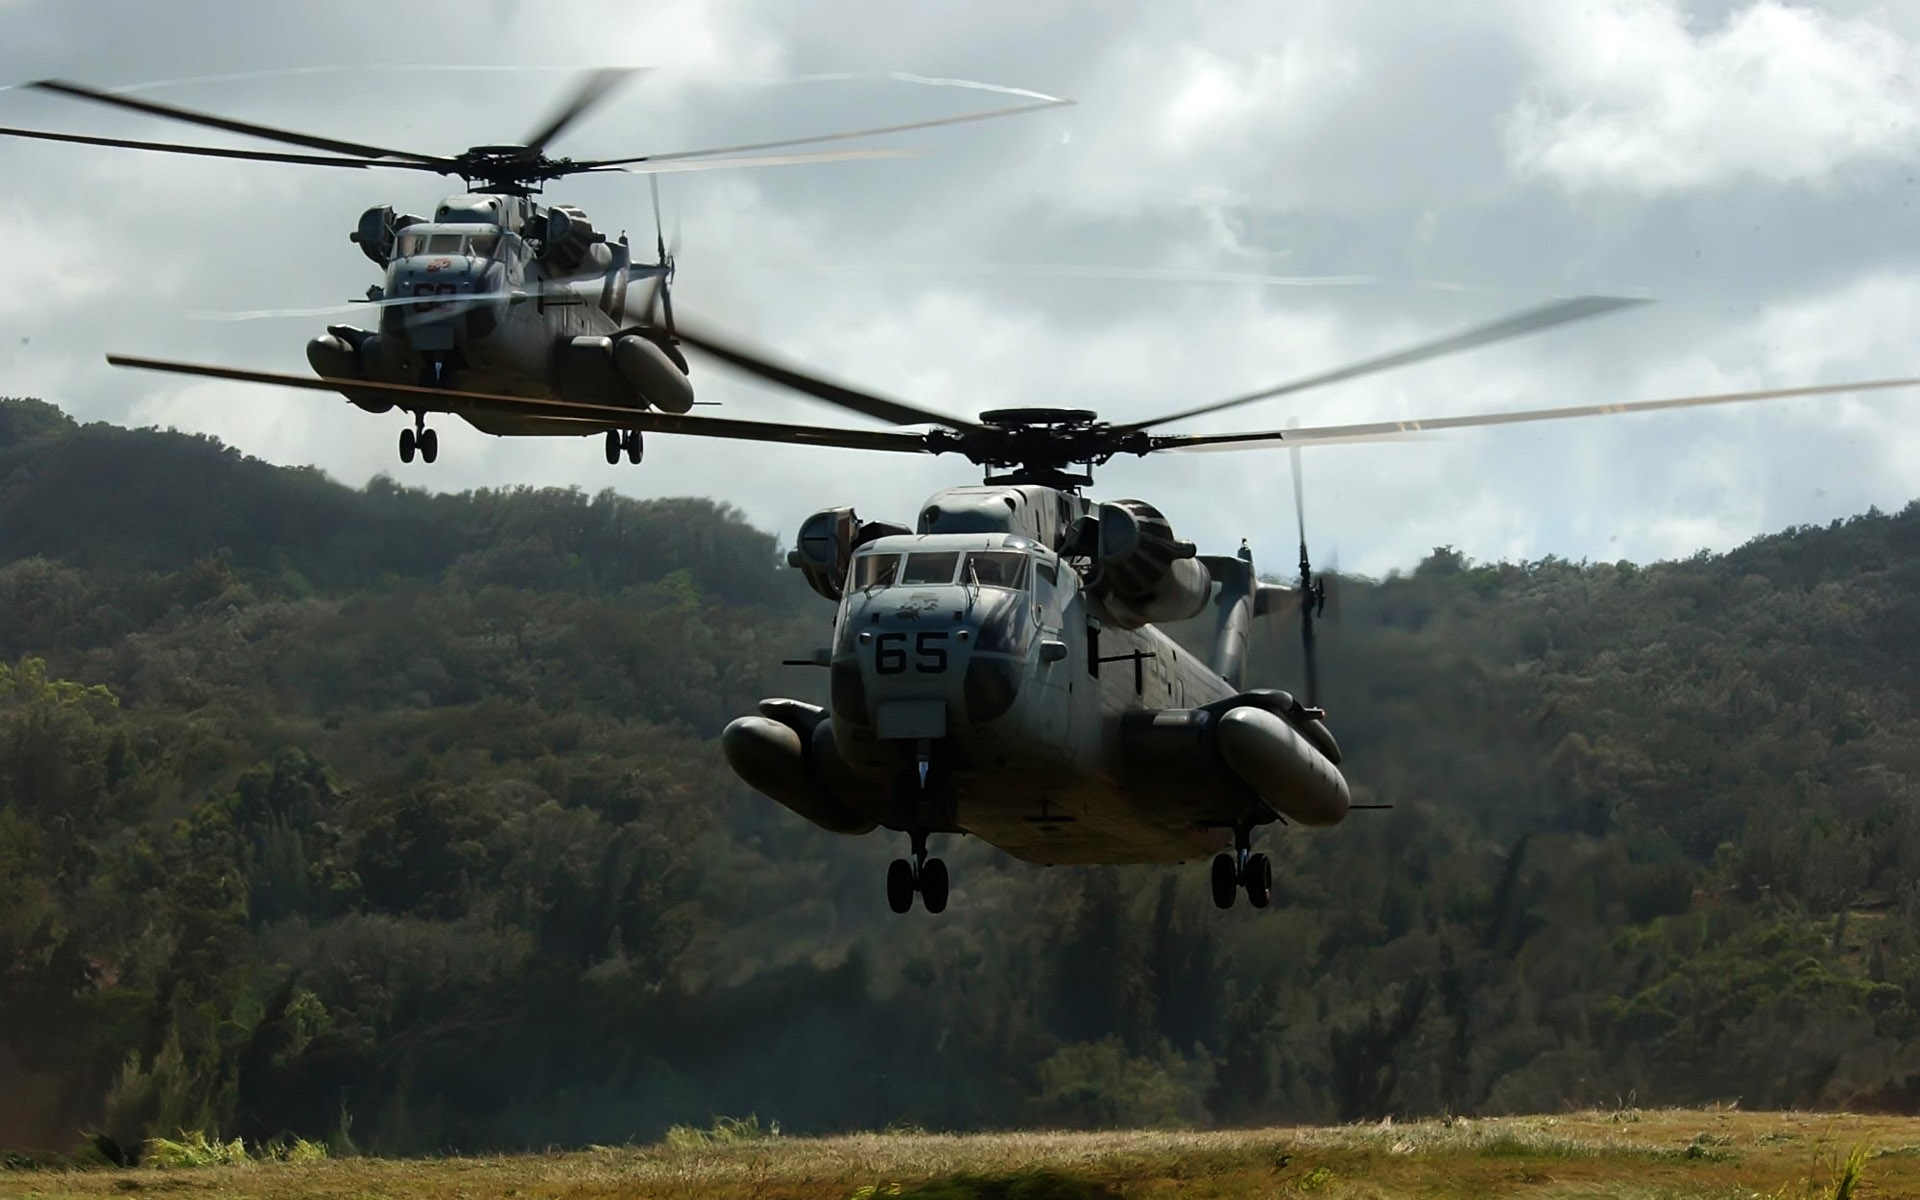 two ch 53 d sea stallion helicopters wide